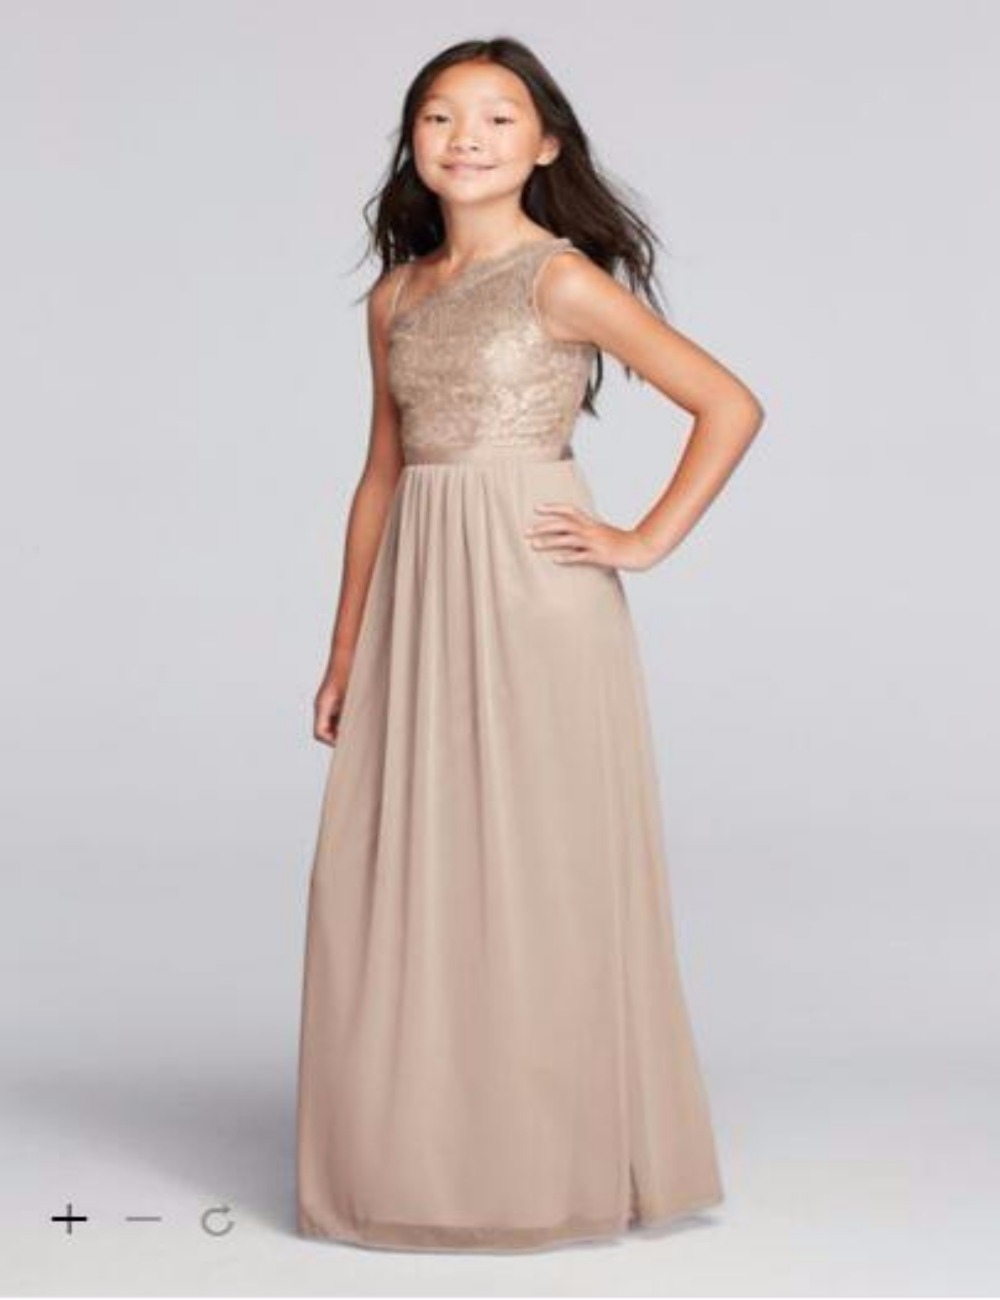 2016 long chiffon a line junior bridesmaid dresses one shouder lace 2016 long chiffon a line junior bridesmaid dresses one shouder lace bodice and floor length chiffle skirt jb9014m junior gowns in bridesmaid dresses from ombrellifo Choice Image